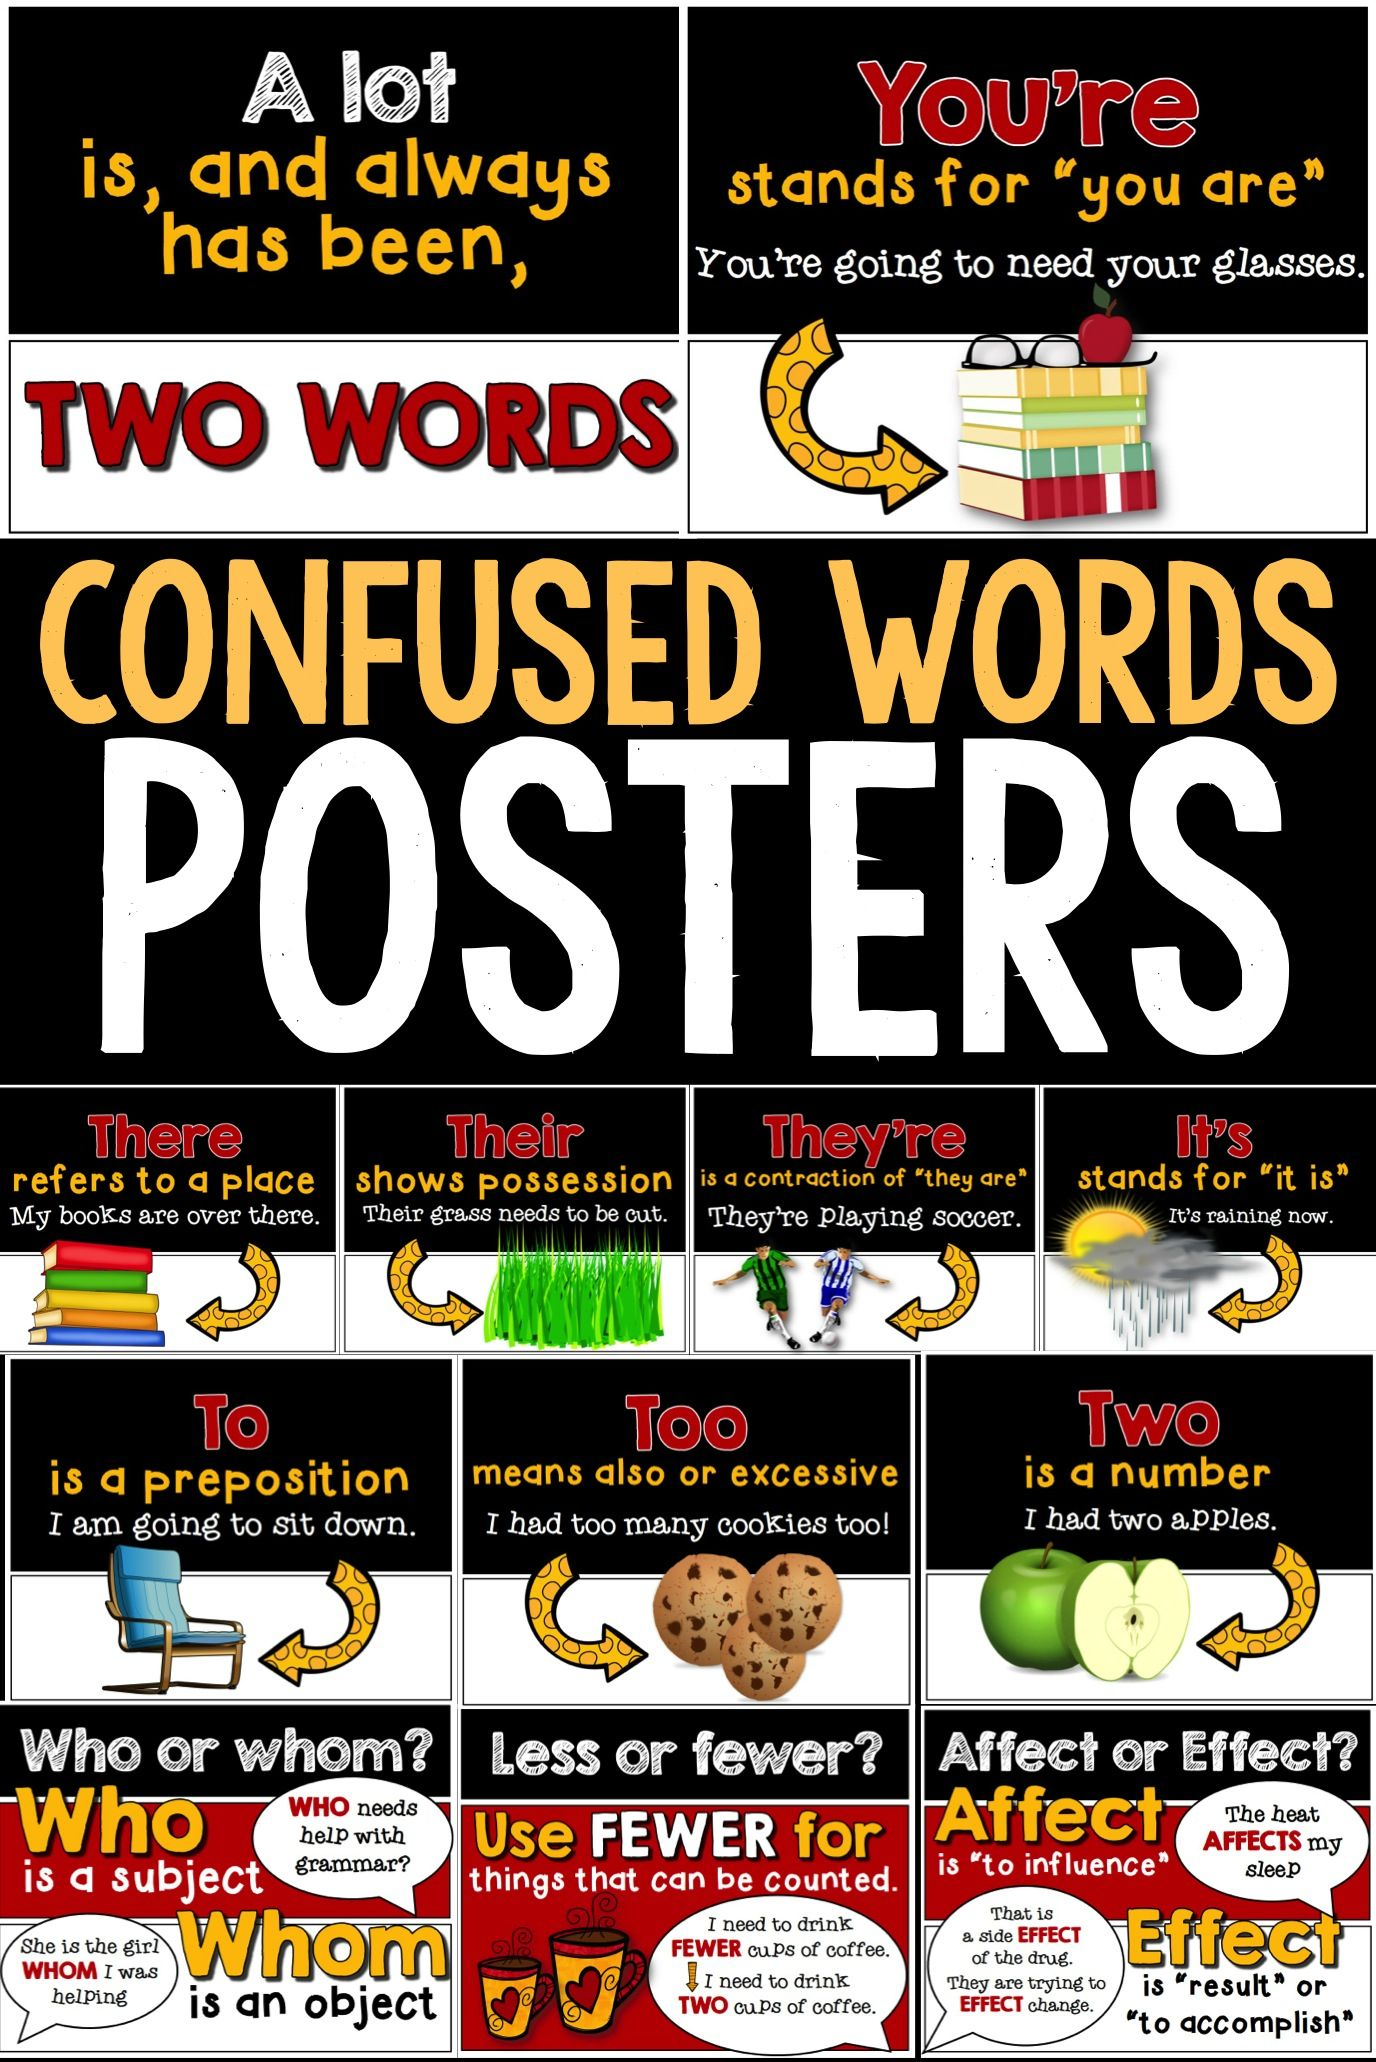 Commonly Confused Words Posters